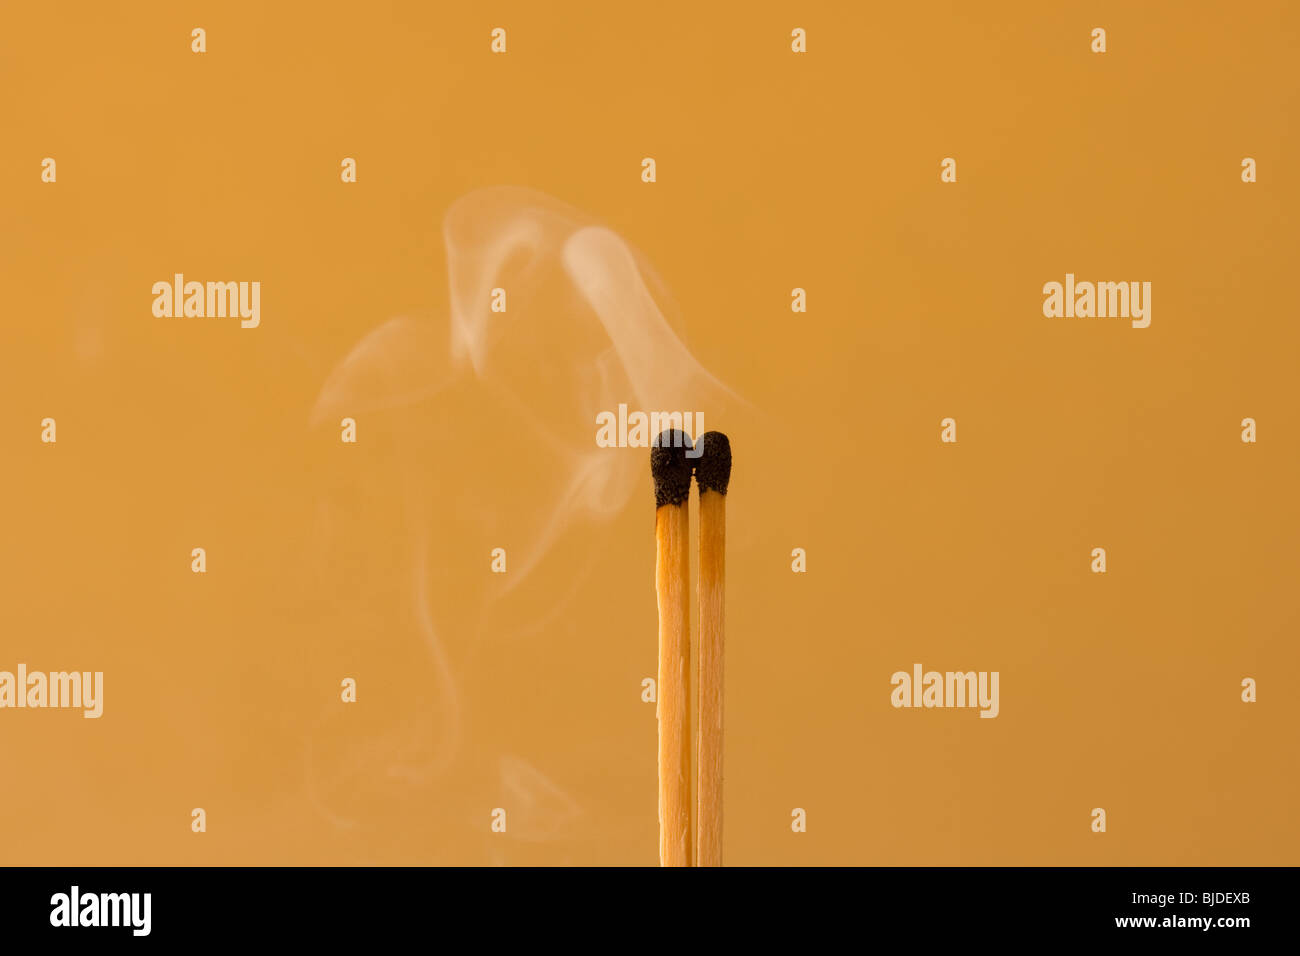 Burn out matches against an orange background - Stock Image